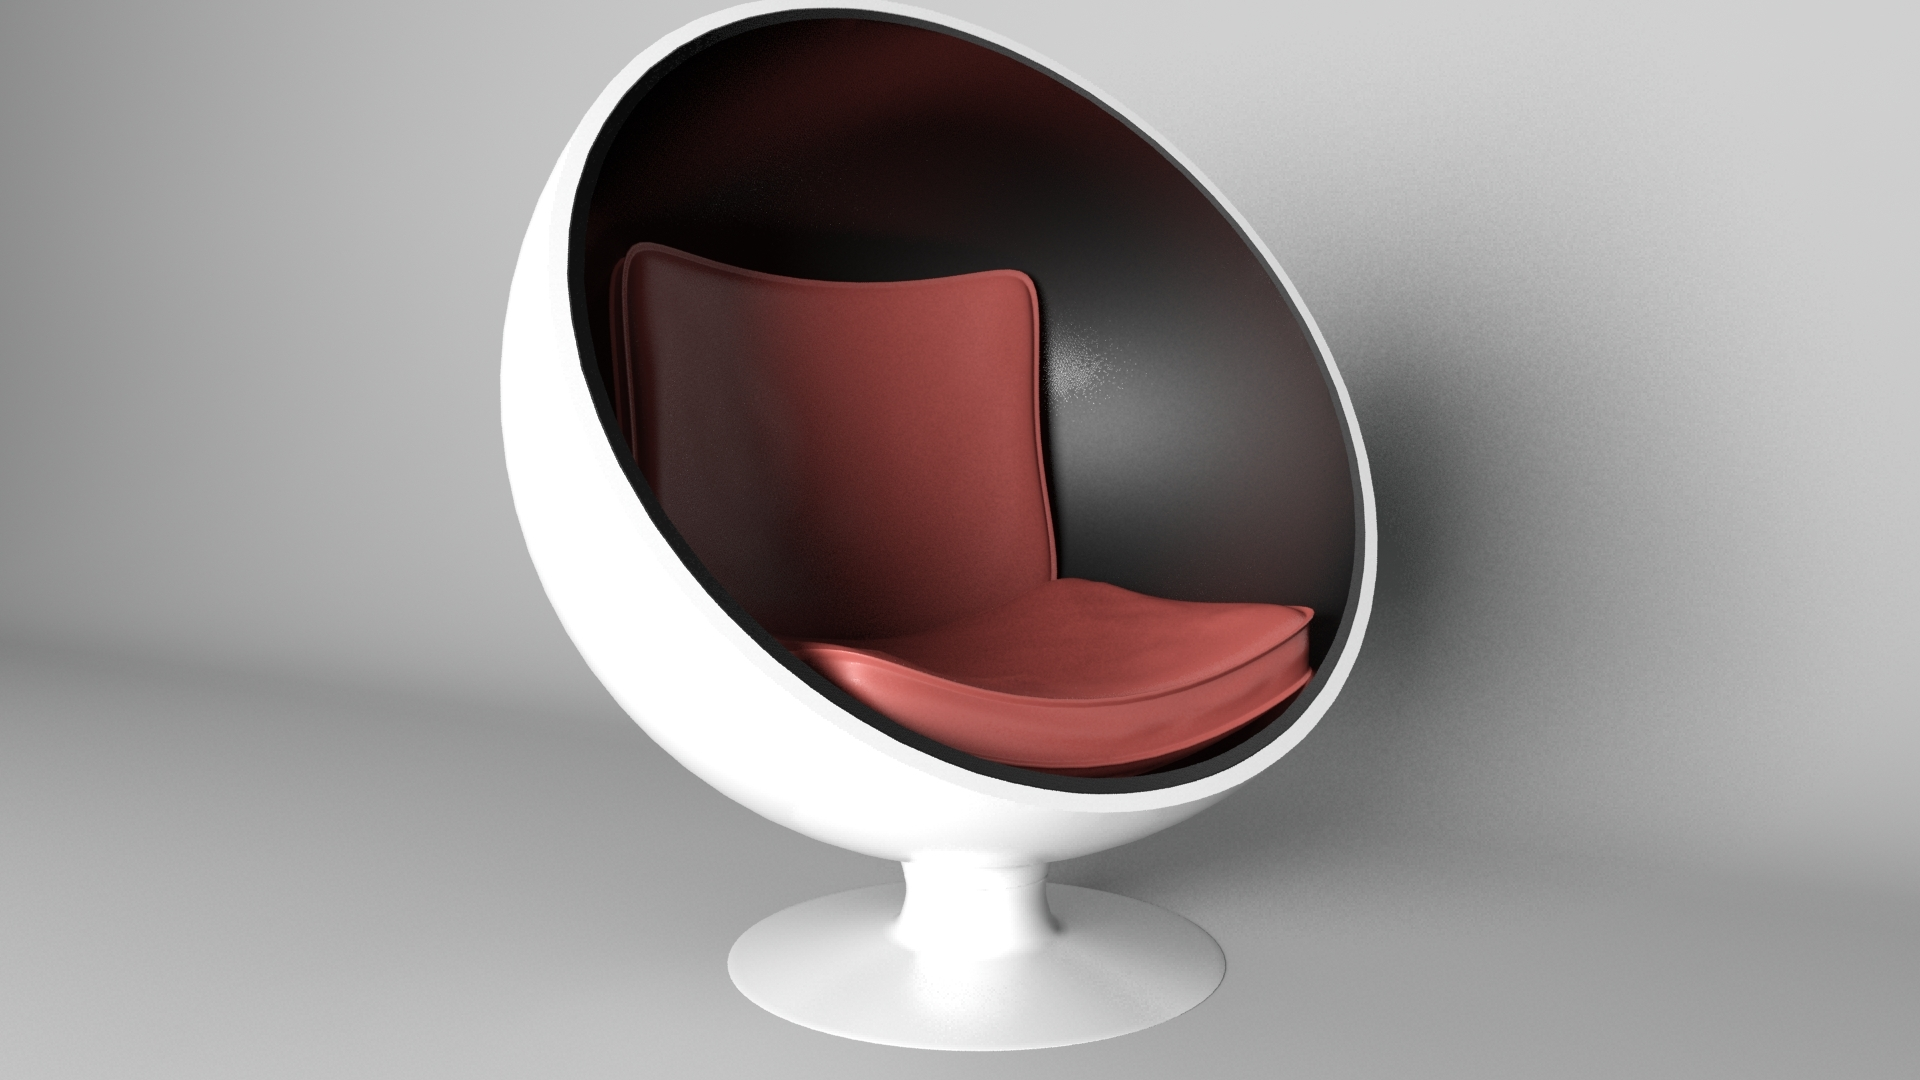 Sphere Chair With Modern Seat Rander In Mantal Ray by Cristean